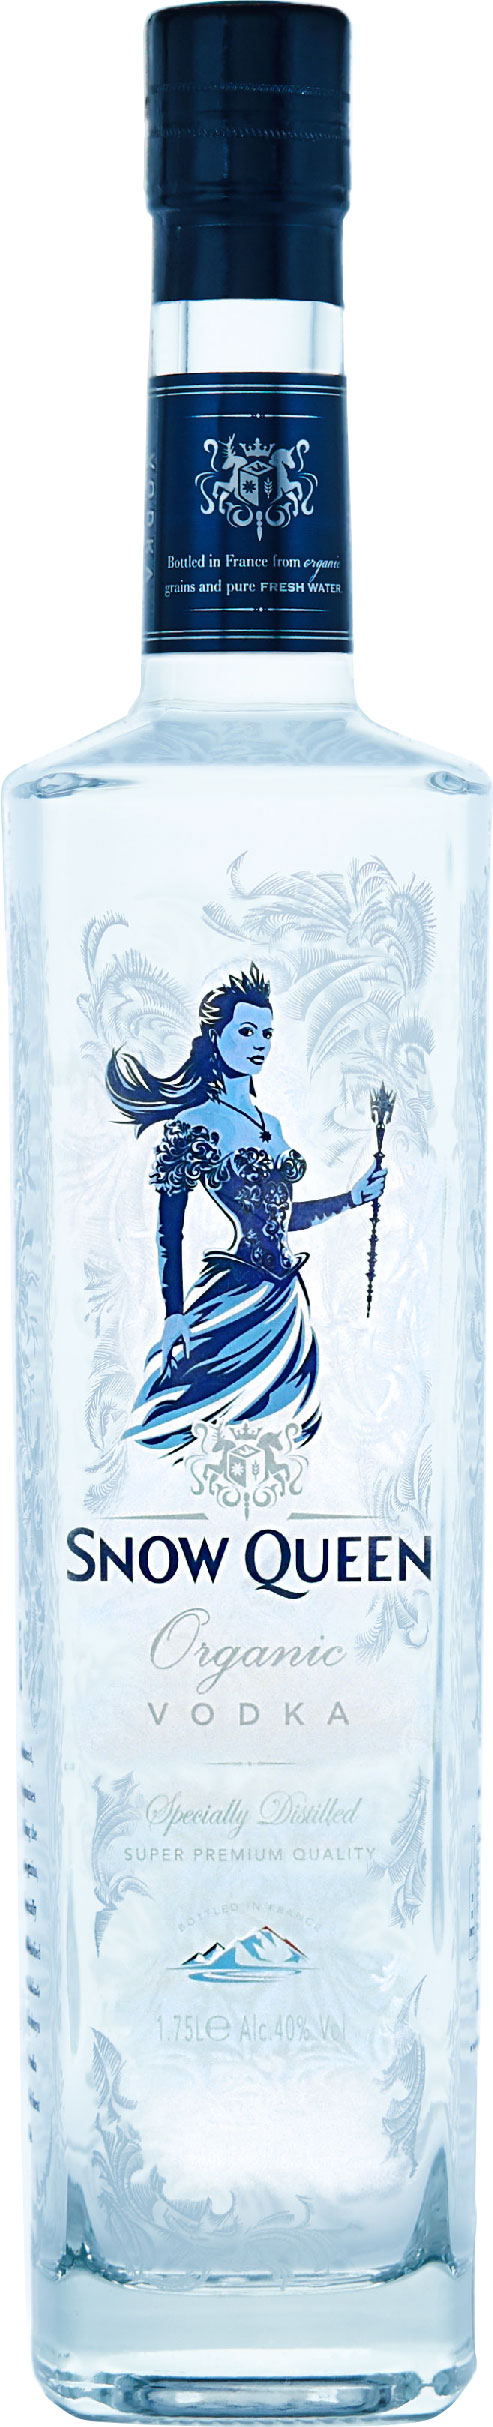 Snow Queen Vodka 1.75 Litre Bottle